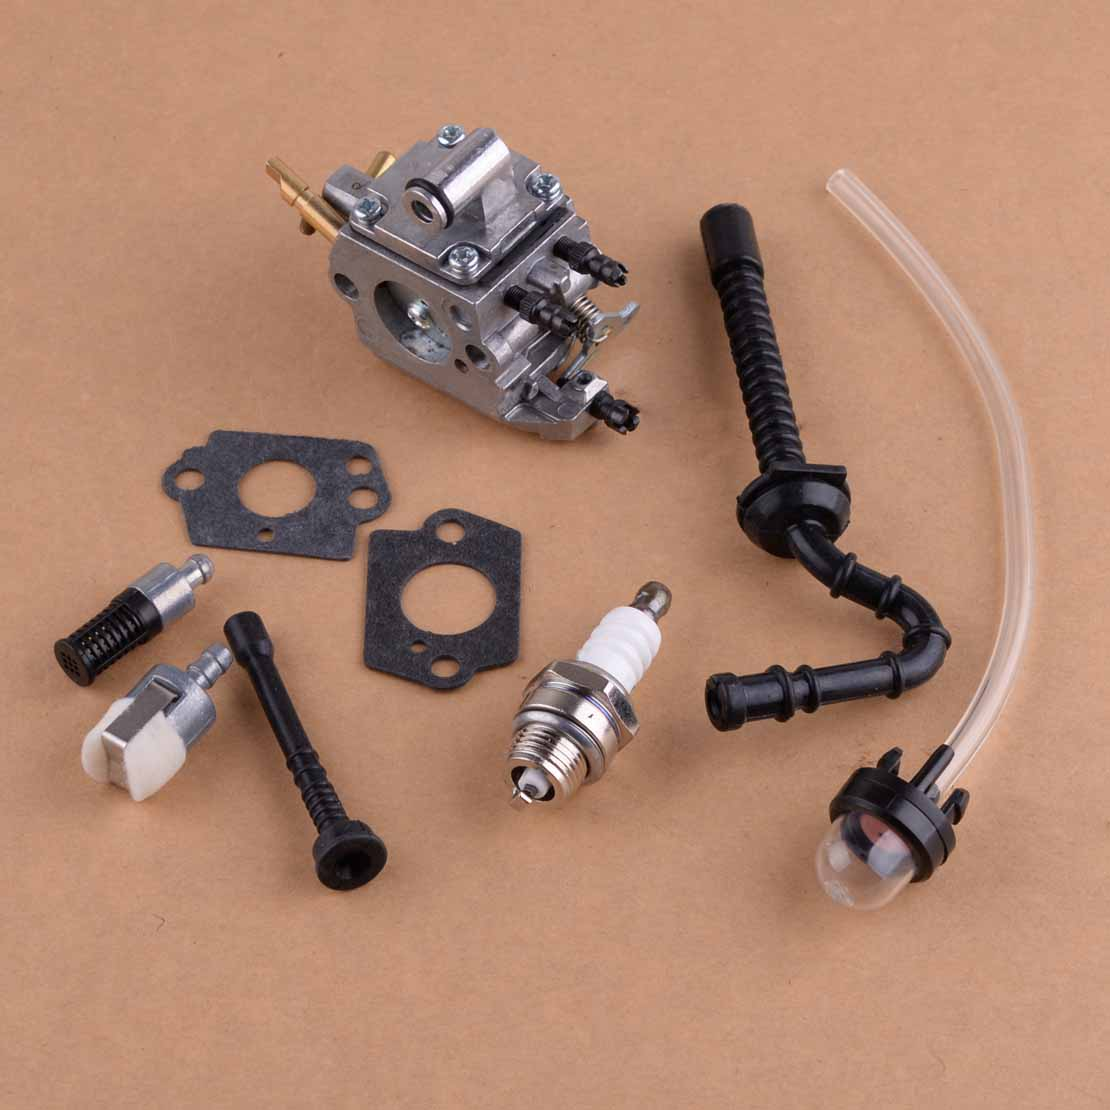 LETAOSK 9pcs Carburetor Carb Tune Up Kits 1137 120 0650 Fit for Stihl MS192T MS192TC Chainsaw Zama C1Q S258